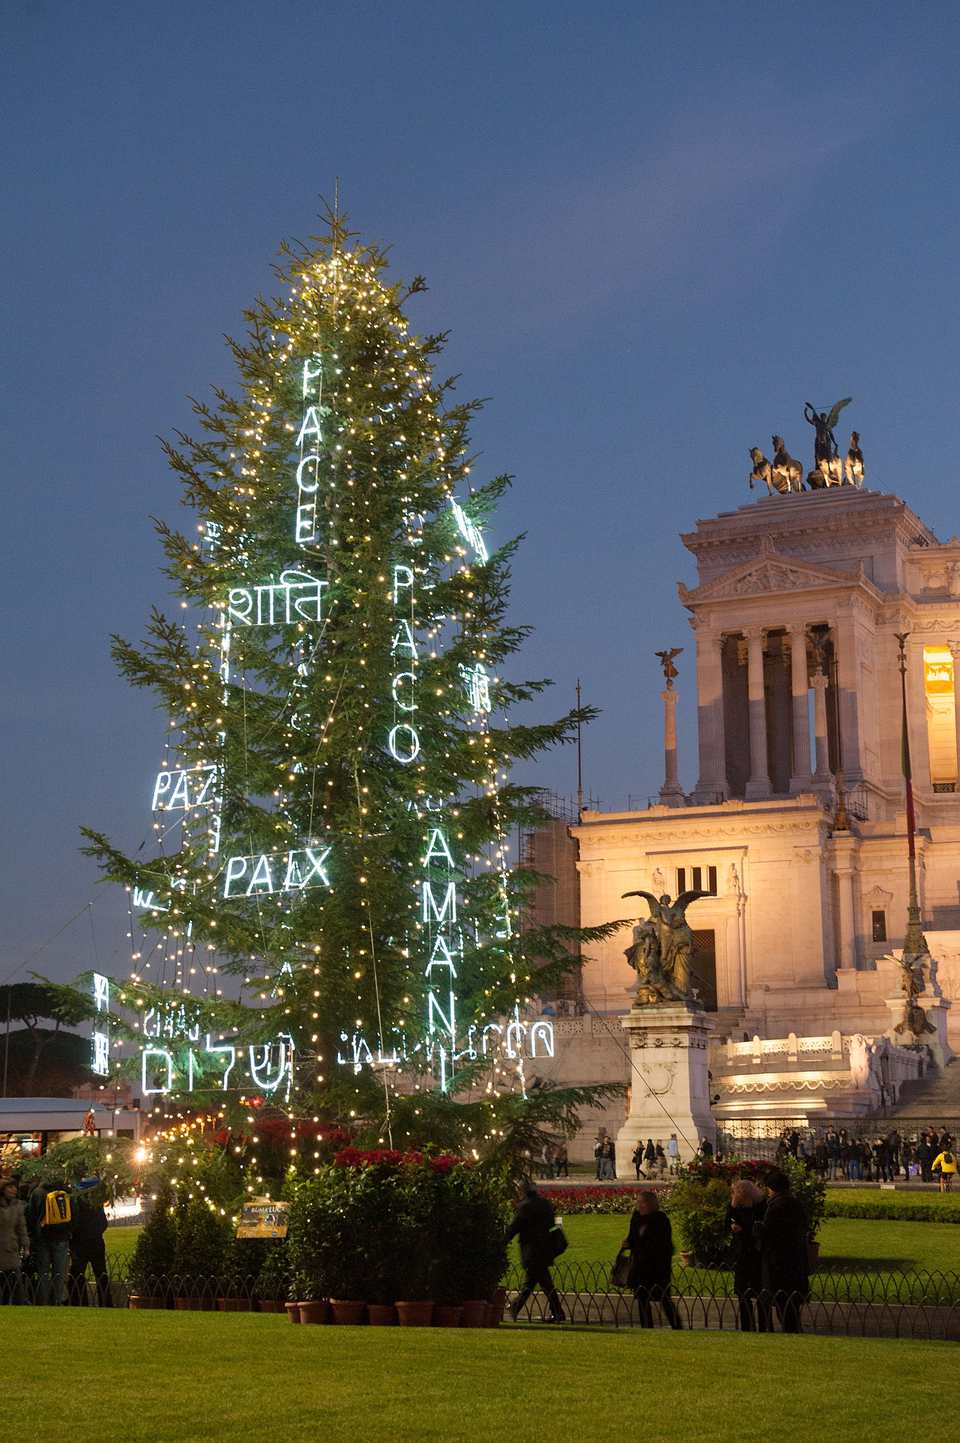 Christmas tree in Rome, Italy